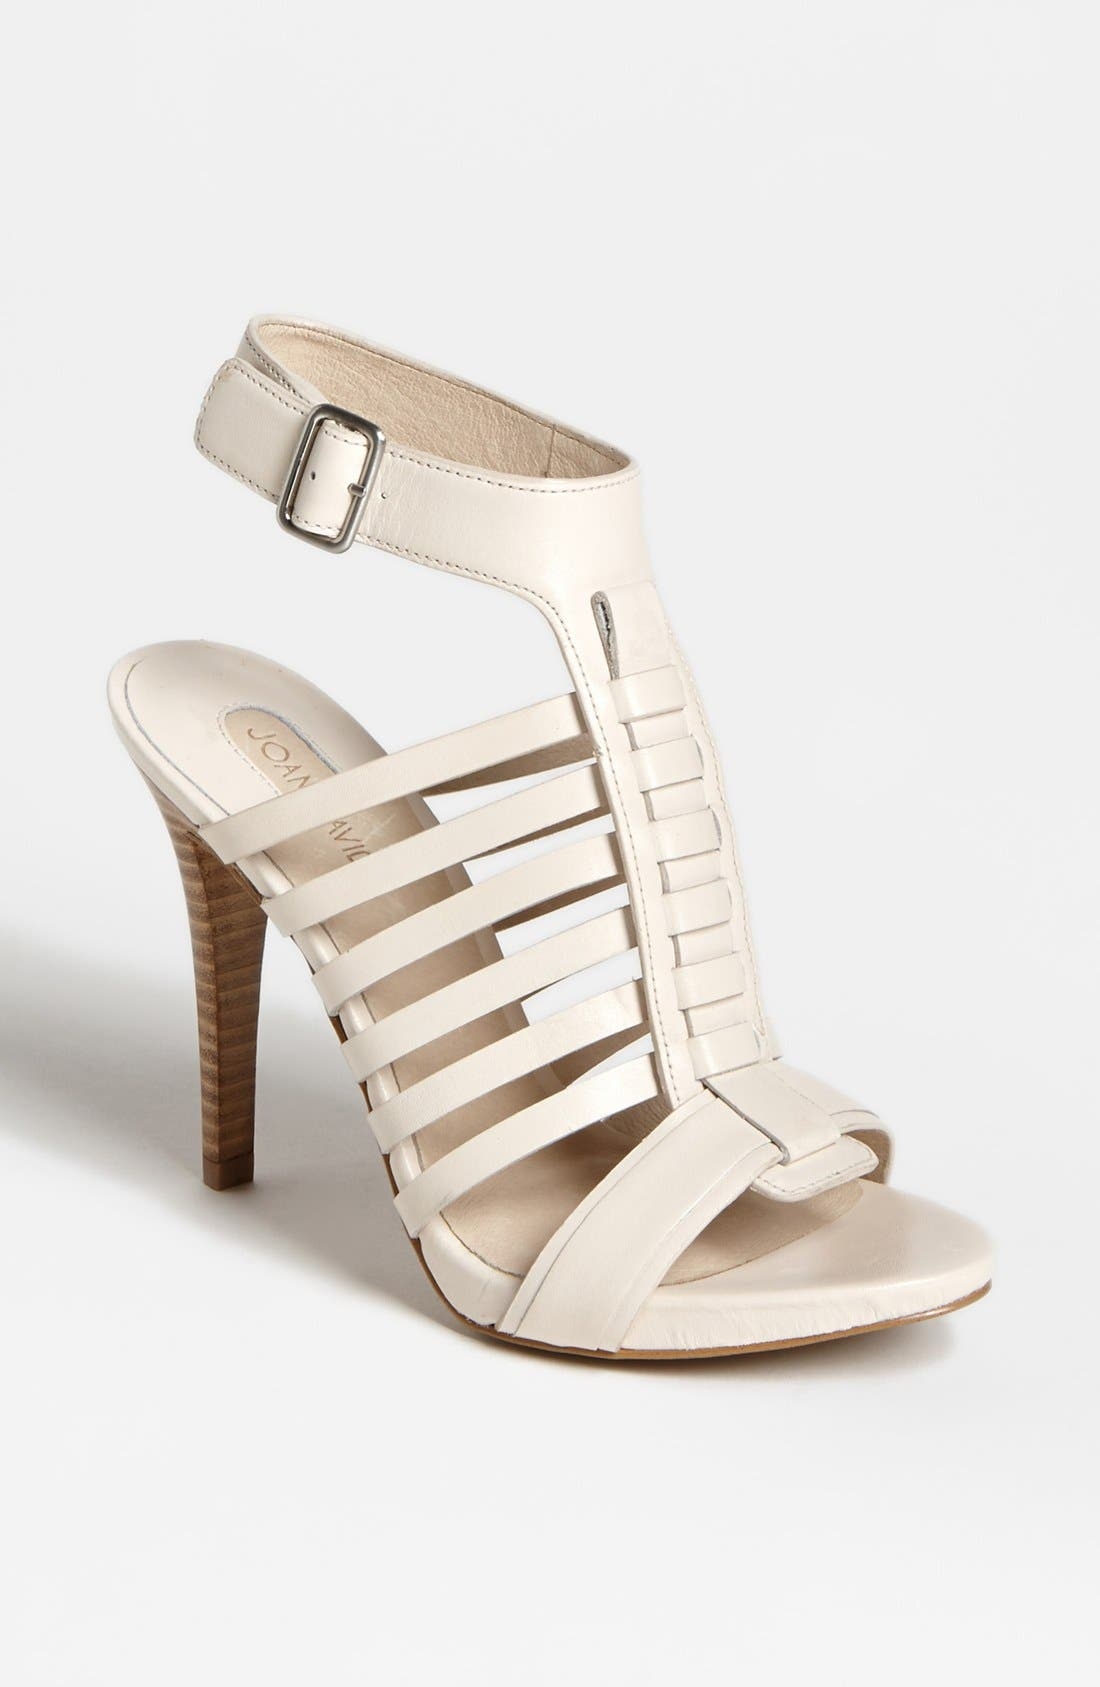 Main Image - Joan & David 'Serenia' Sandal